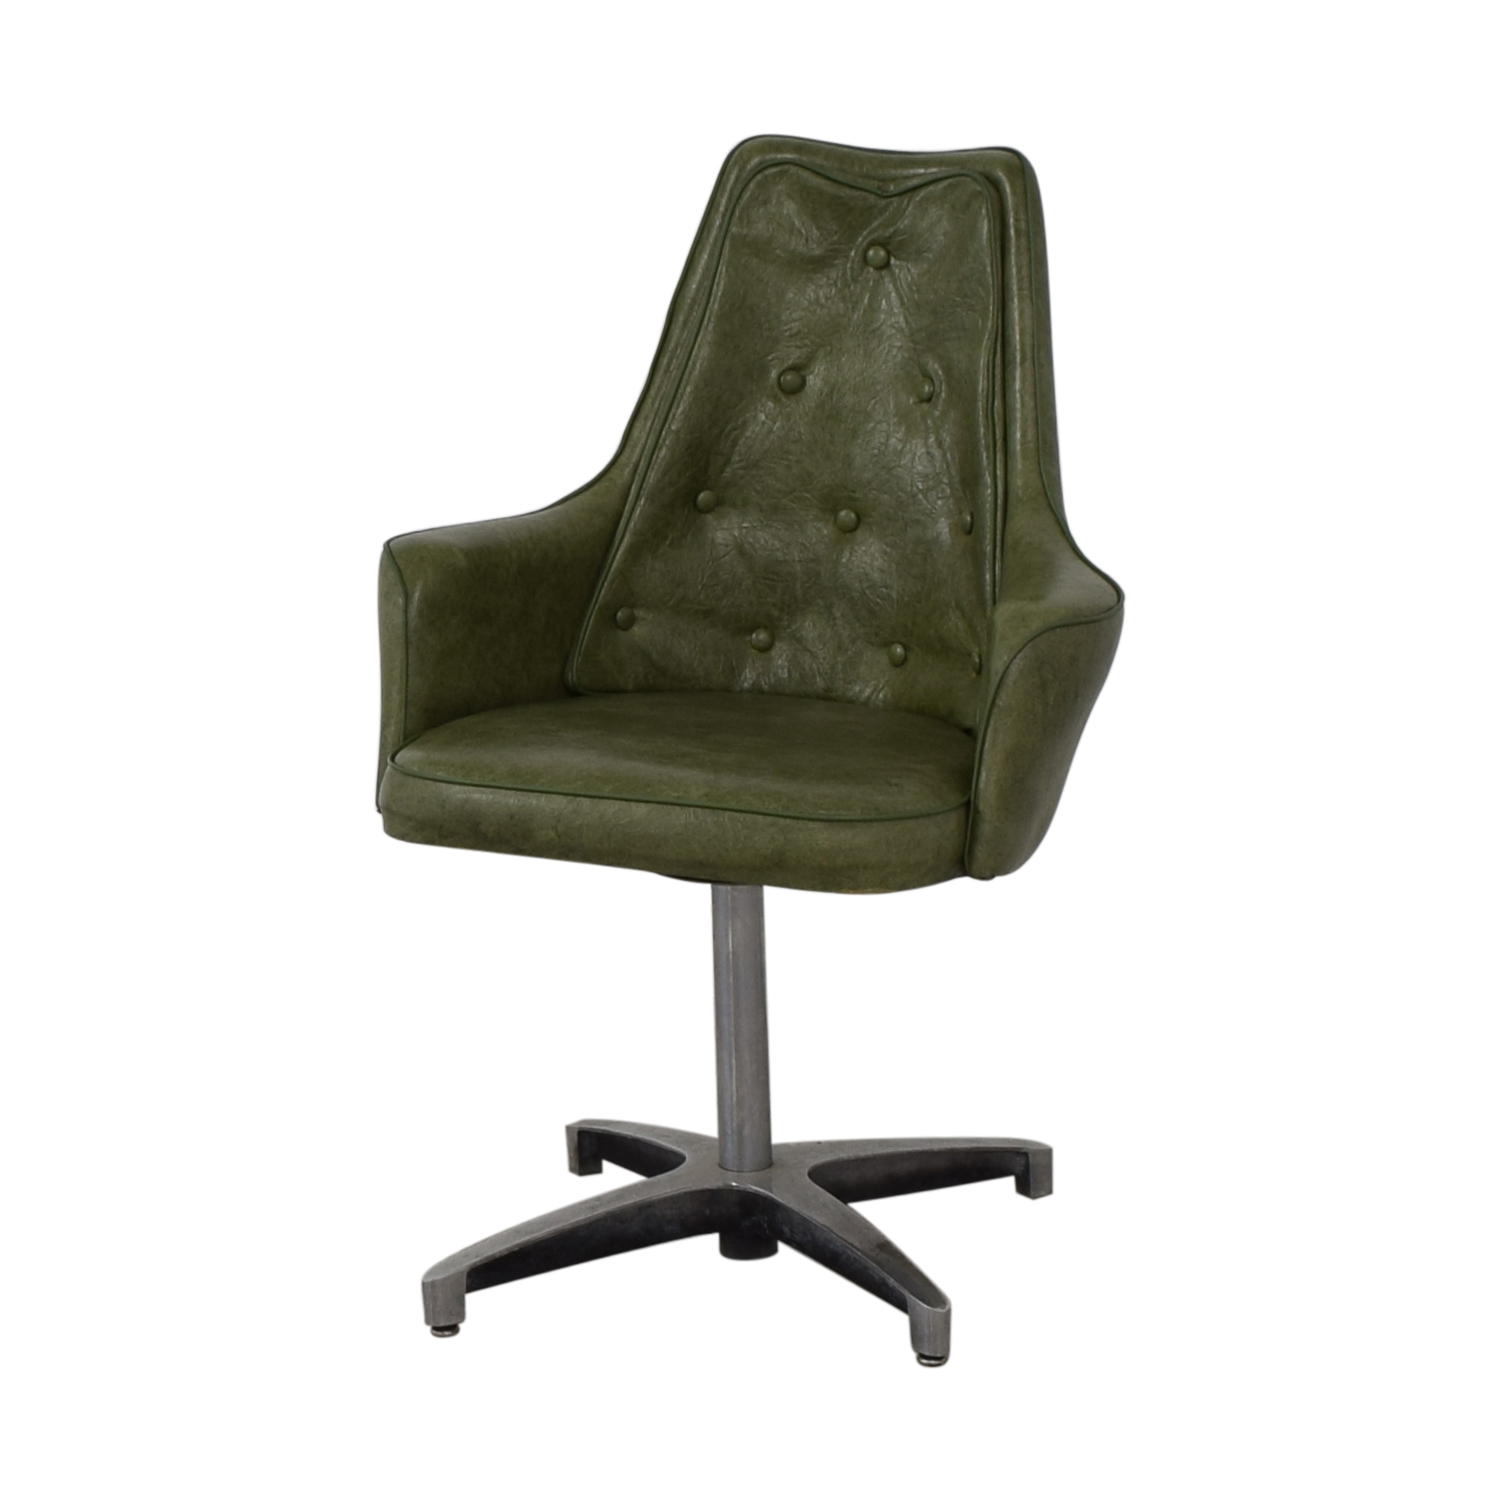 buy Spartan Chrome Furniture Green Leather Chair Spartan Chrome Furniture Home Office Chairs